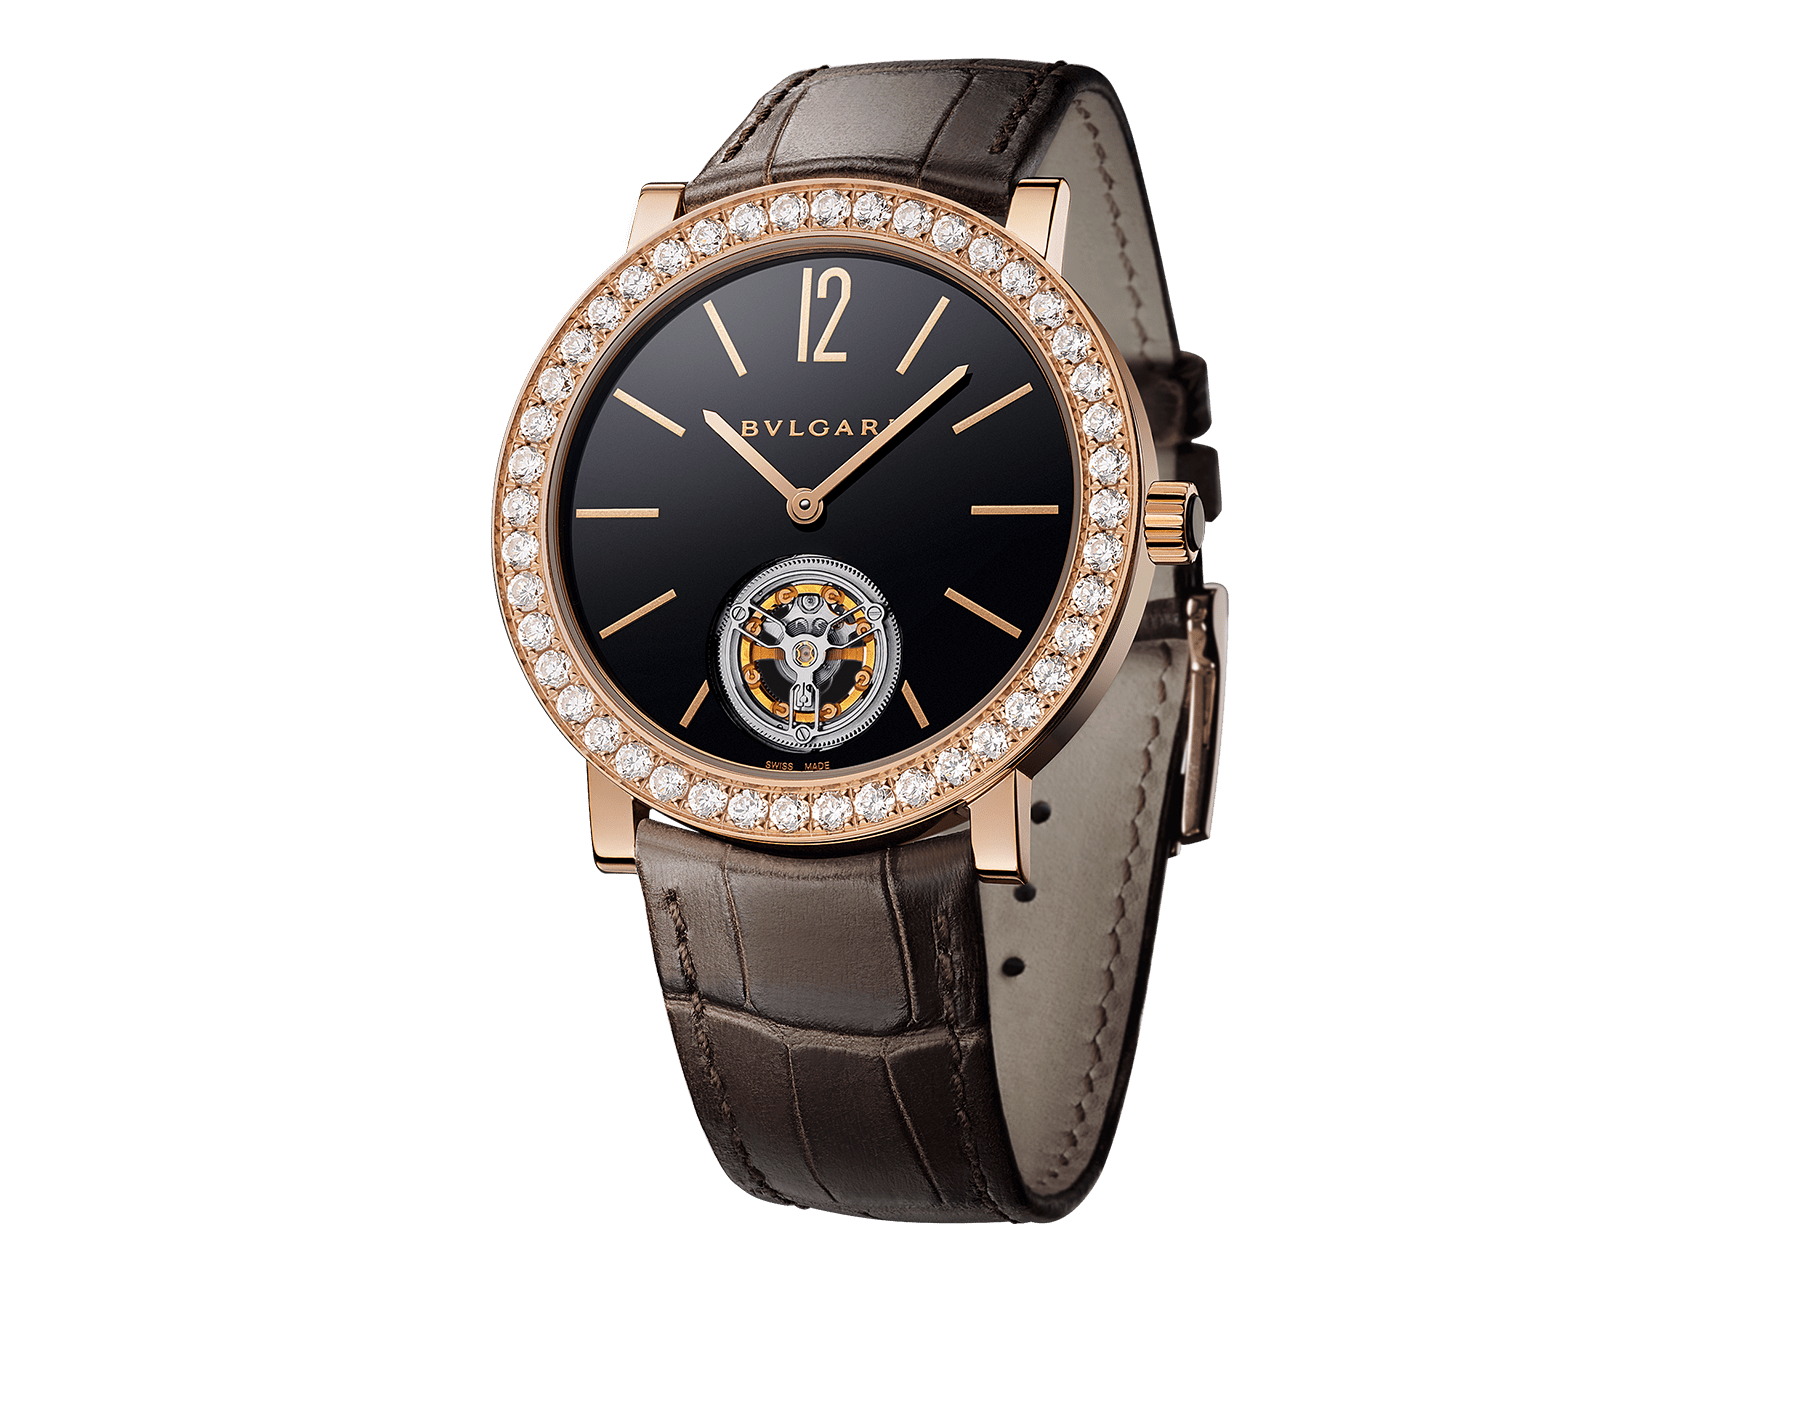 BVLGARI ROMA Finissimo Tourbillon watch with mechanical movement, manual winding and ball-bearing system, 18 kt rose gold case set with brilliant-cut diamonds, black lacquered dial with tourbillon see-through opening and brown alligator bracelet 102430 image 1